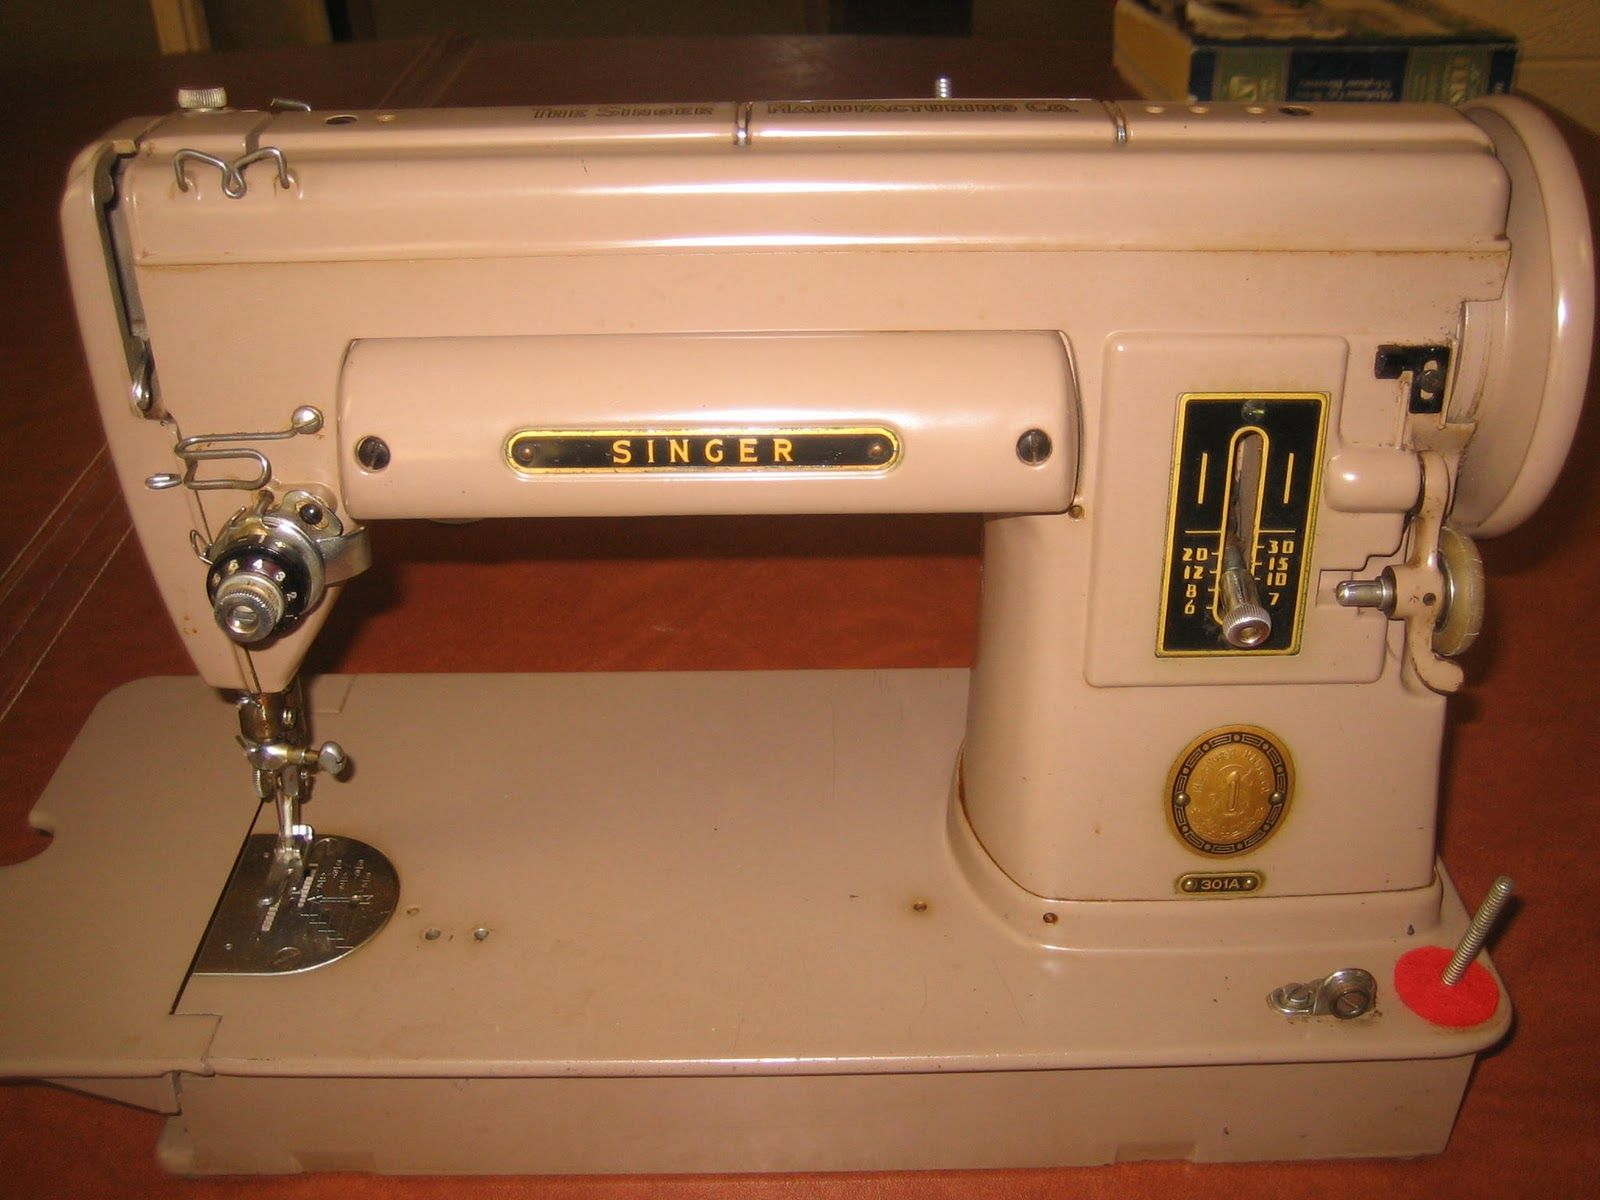 Pics of some 301 Singer Sewing Machines on Gaileee's Singer Featherweight 221 Site - 2